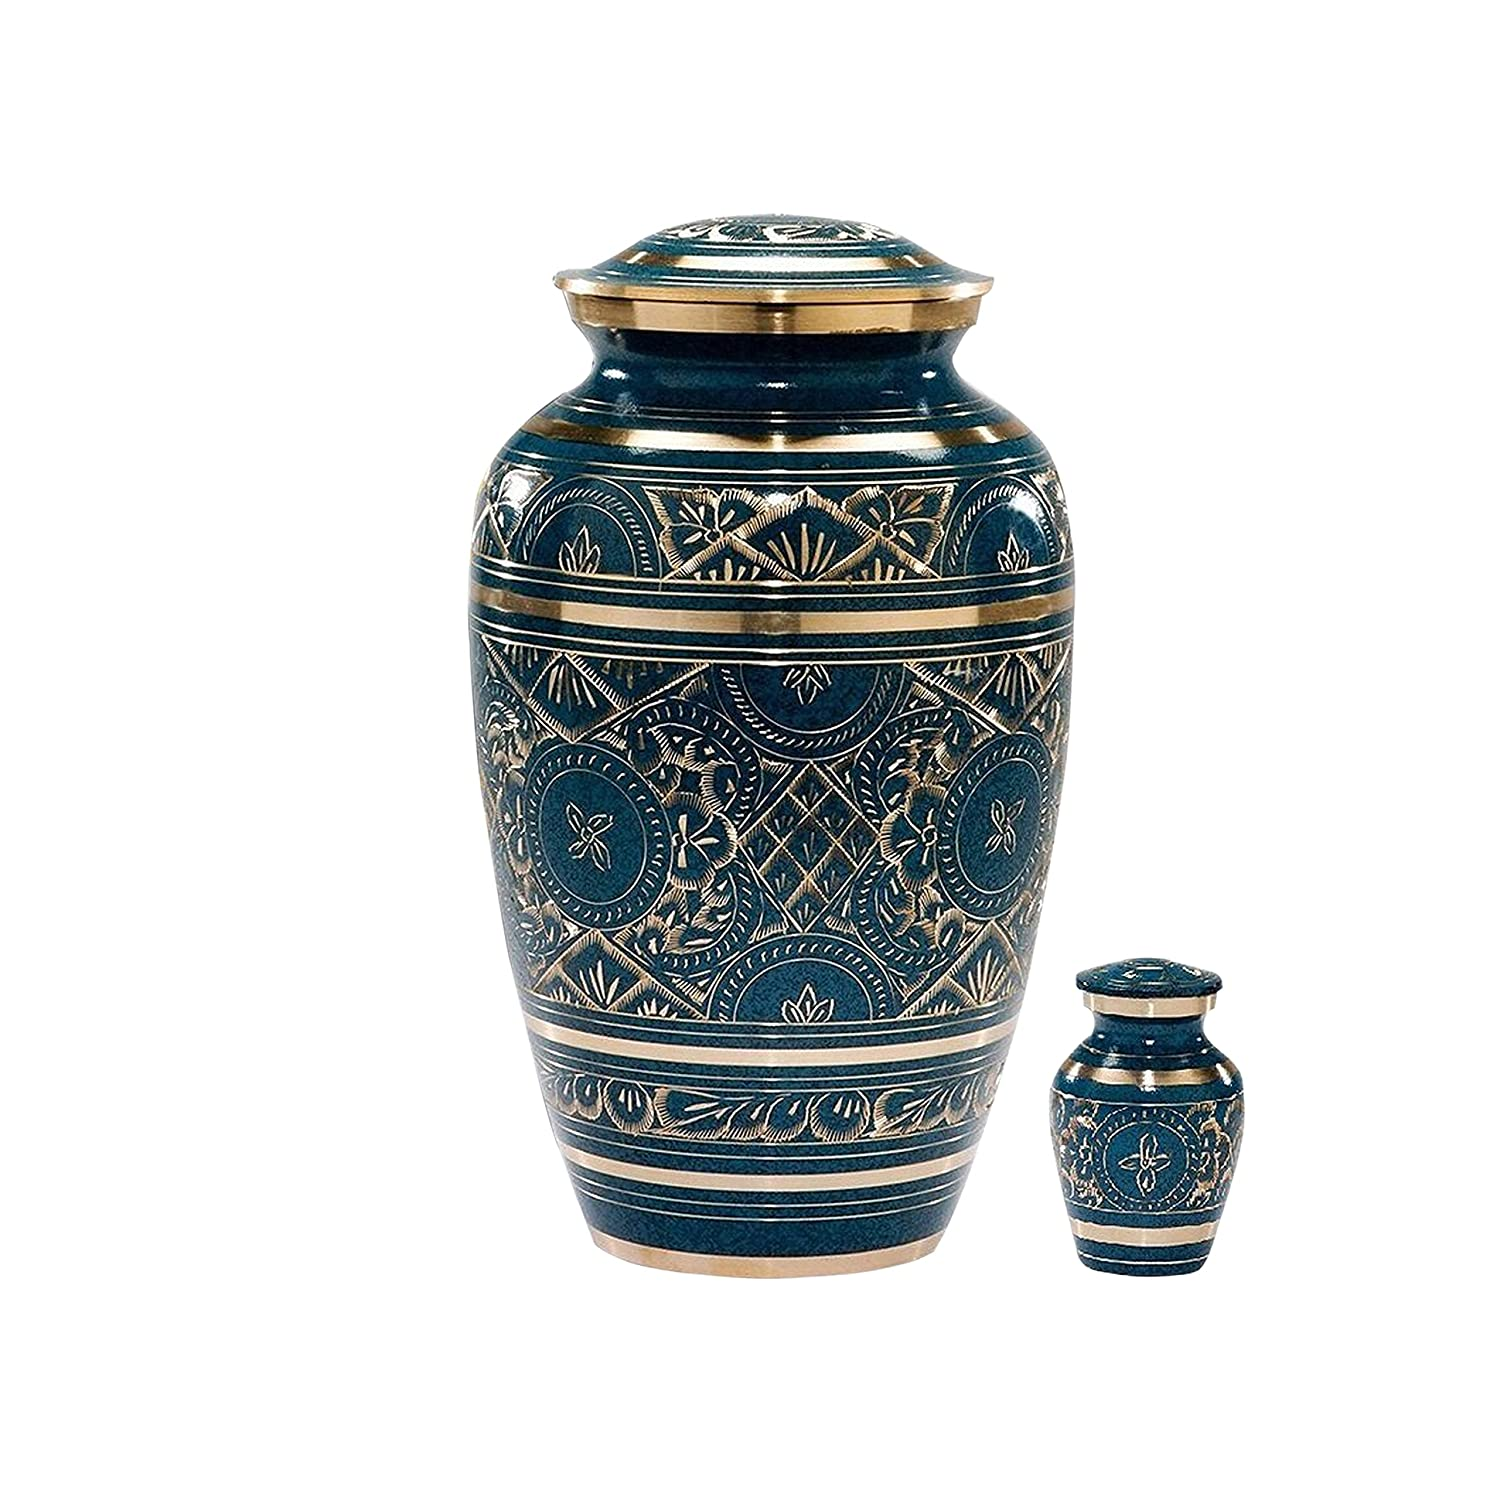 MEMORIALS 4U Caribbean Blue Cremation Urn – Handcrafted Classic Azure Urn for Ashes – Majestic Blue Funeral Urn with Beautiful Gold Etched Design – Large Urn with Free Keepsake Bag